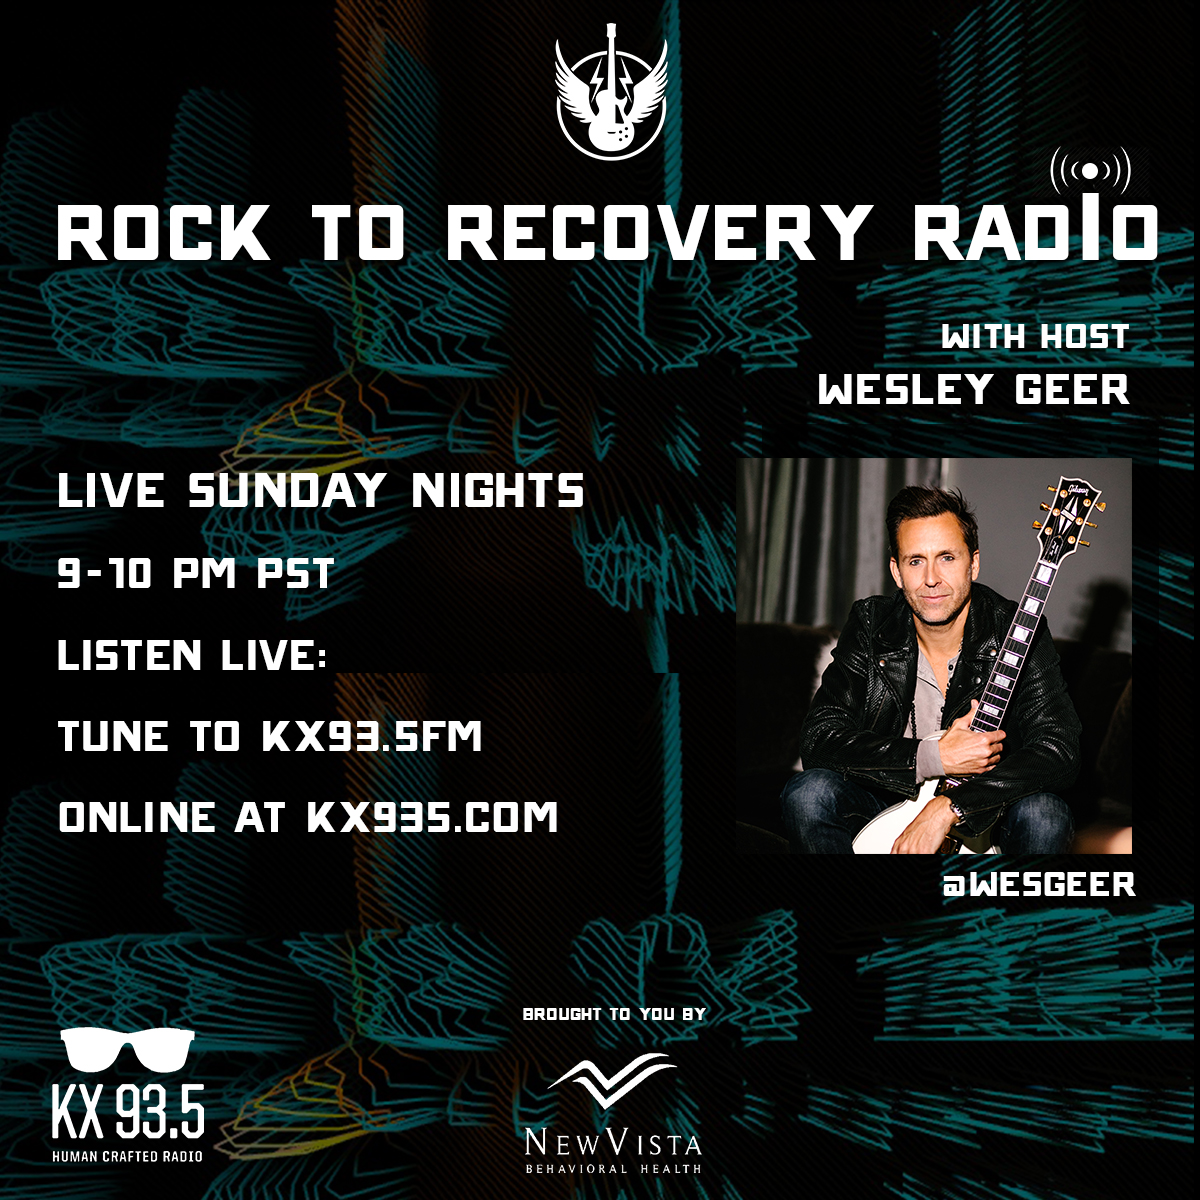 Rock to Recovery Radio